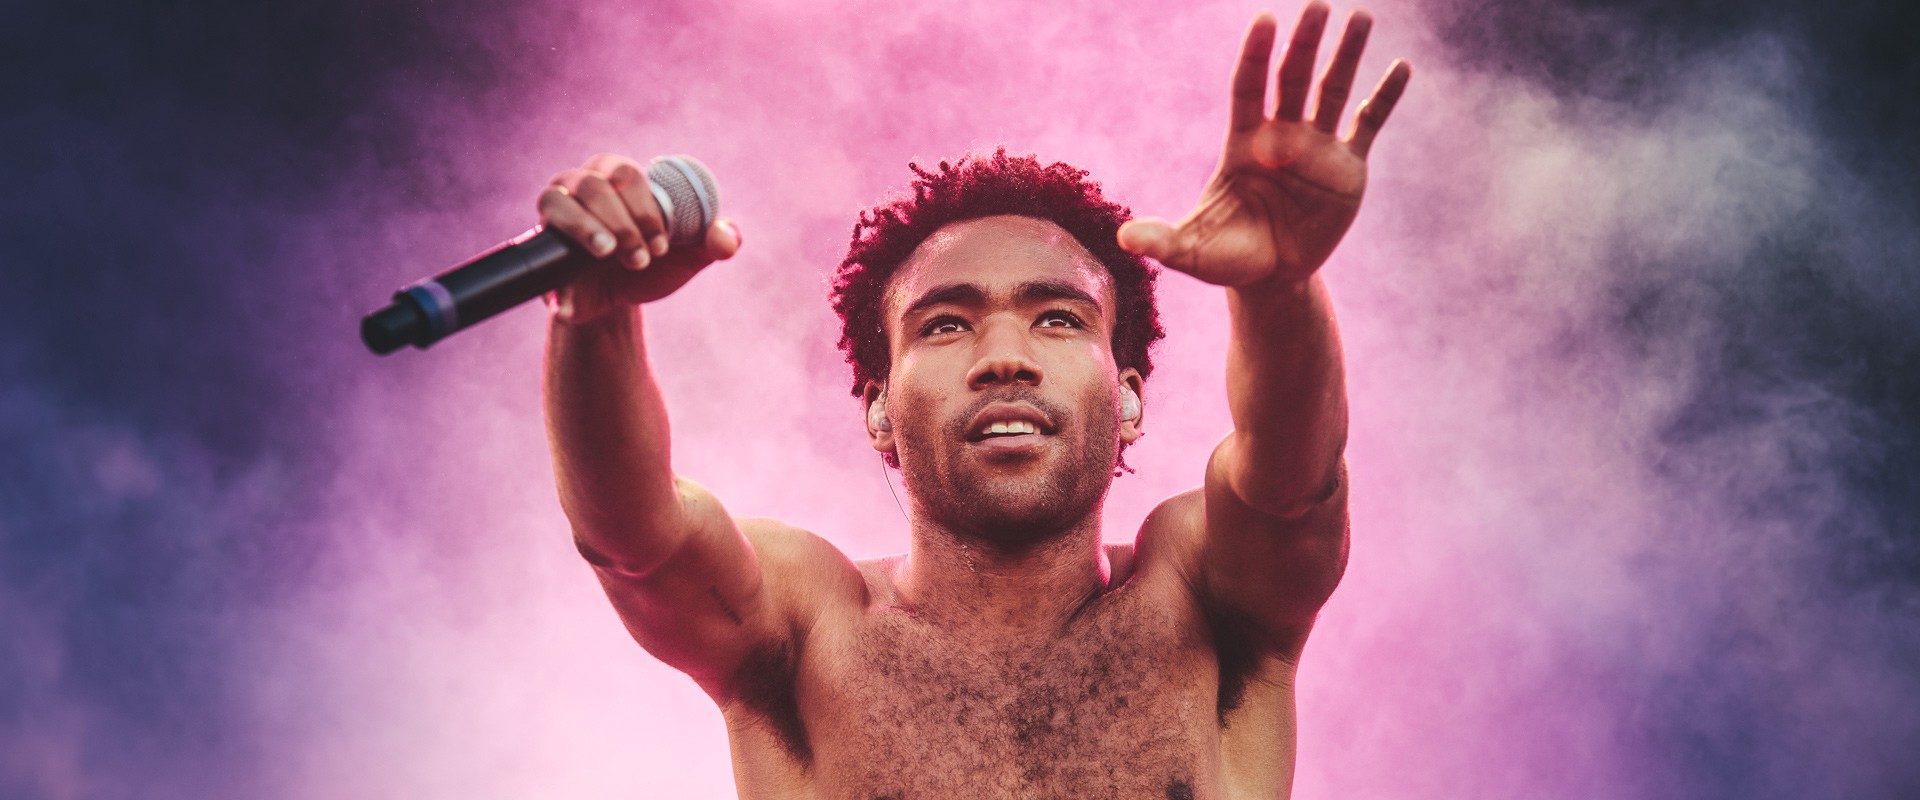 Childish Gambino's Top 5 Most Underrated Songs ...